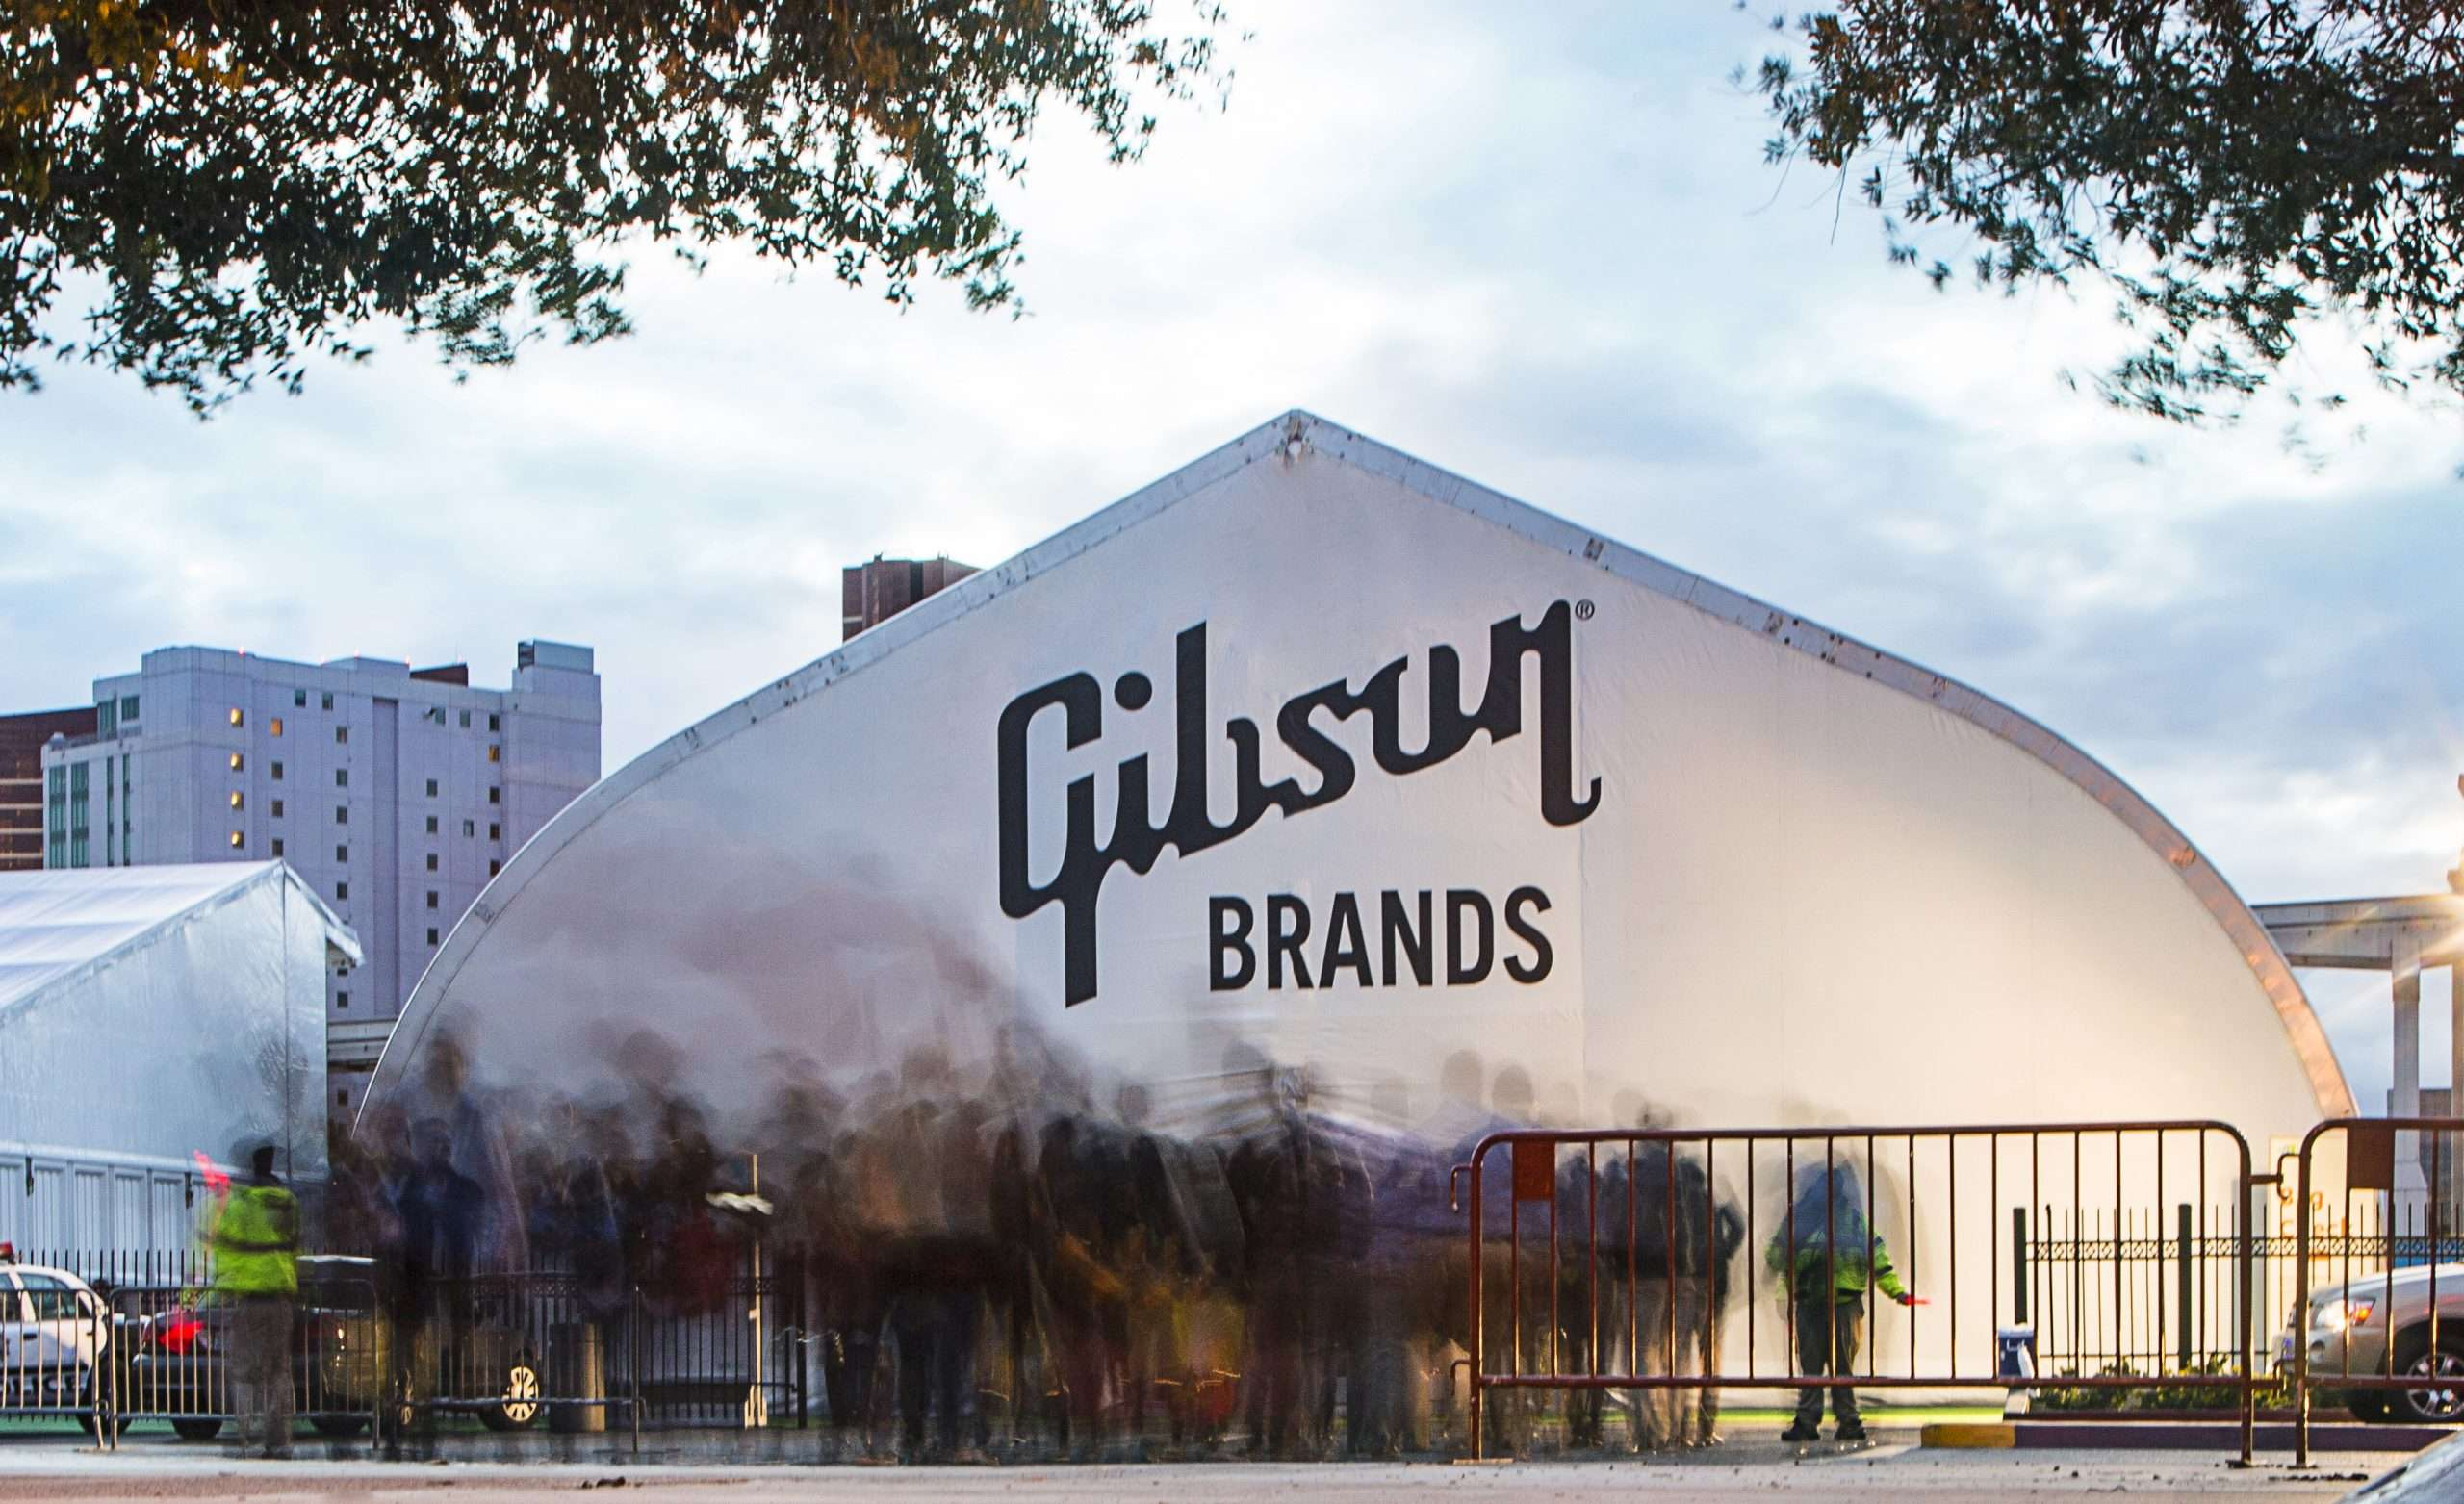 Gibson Guitar tent at CES 2018 with a crowd of visitors at the tension fabric building entrance